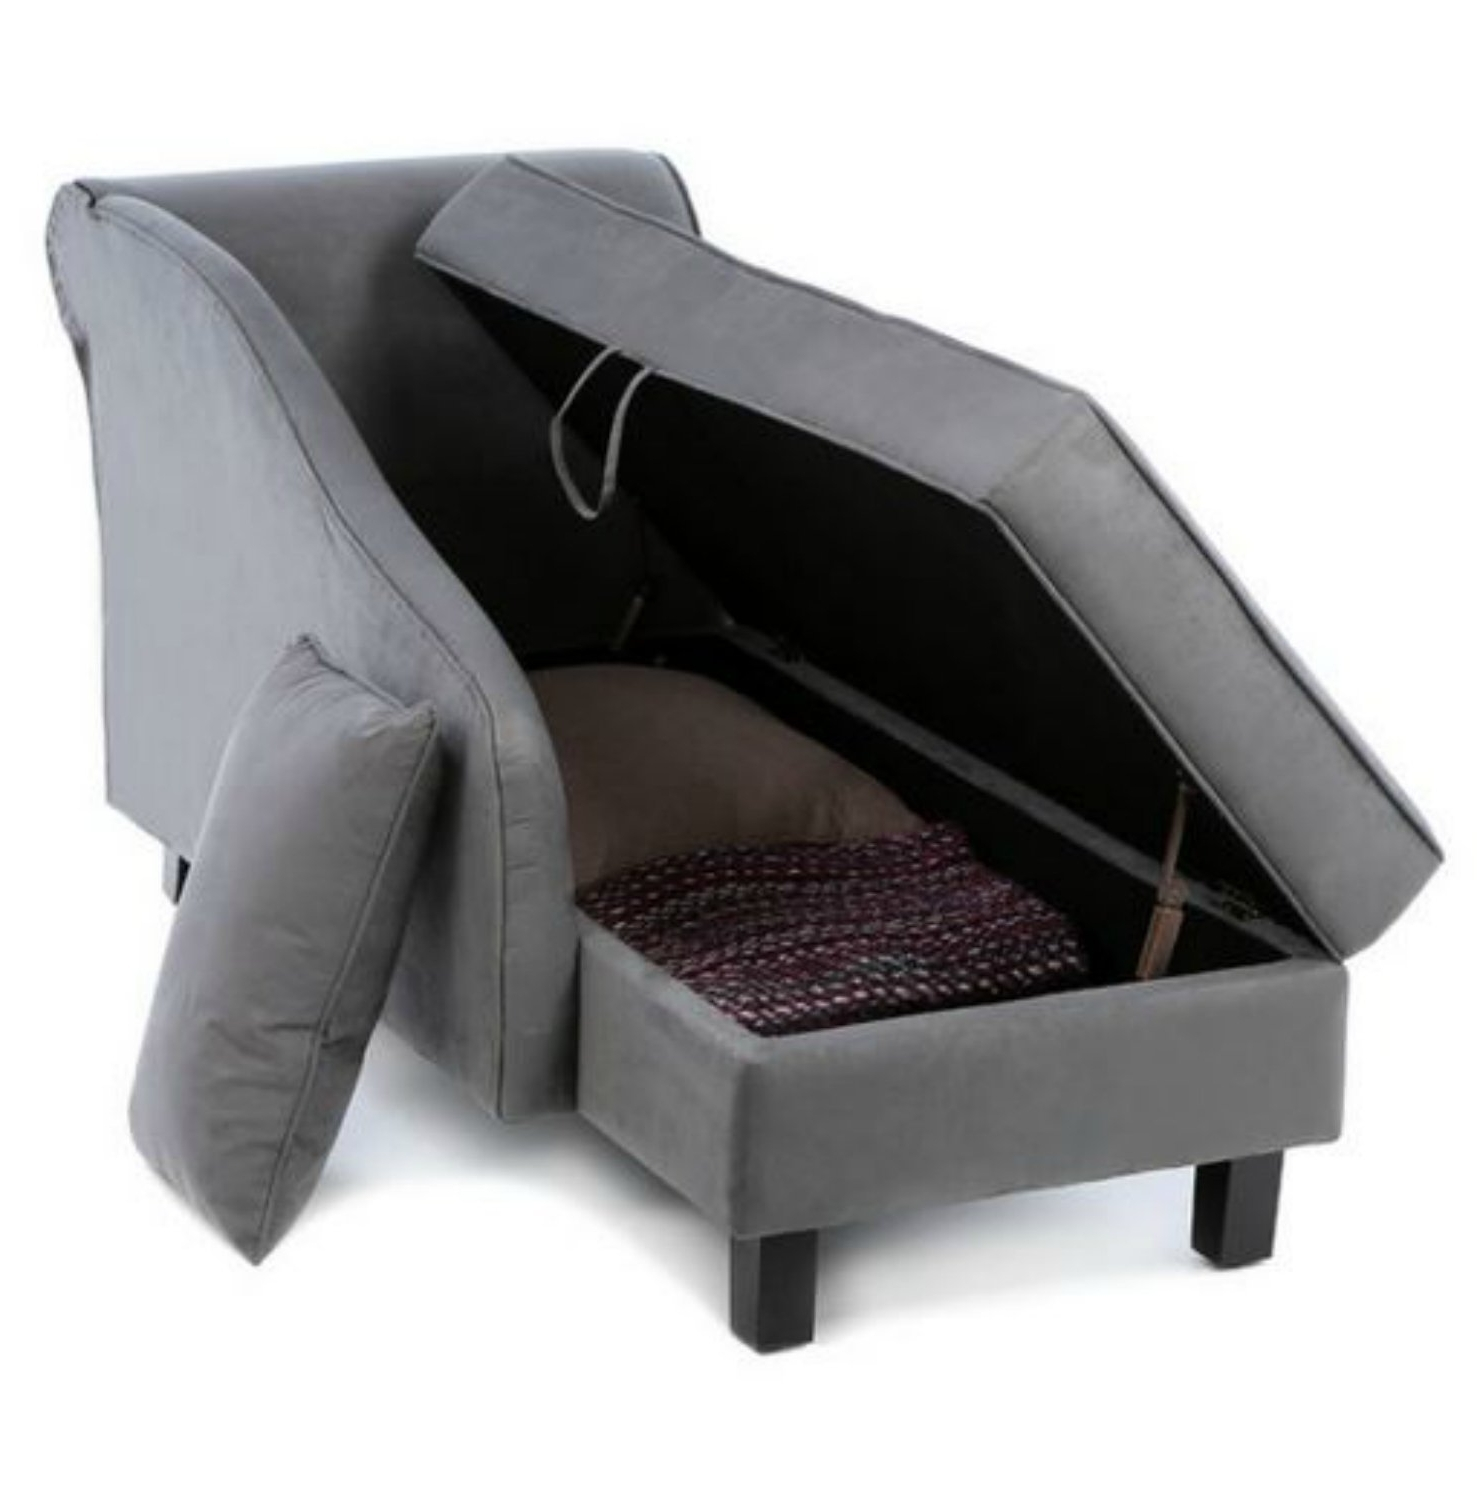 Most Recent Amazon: Storage Chaise Lounge Chair  This Microfiber Regarding Chaise Lounge Chairs With Storage (View 10 of 15)